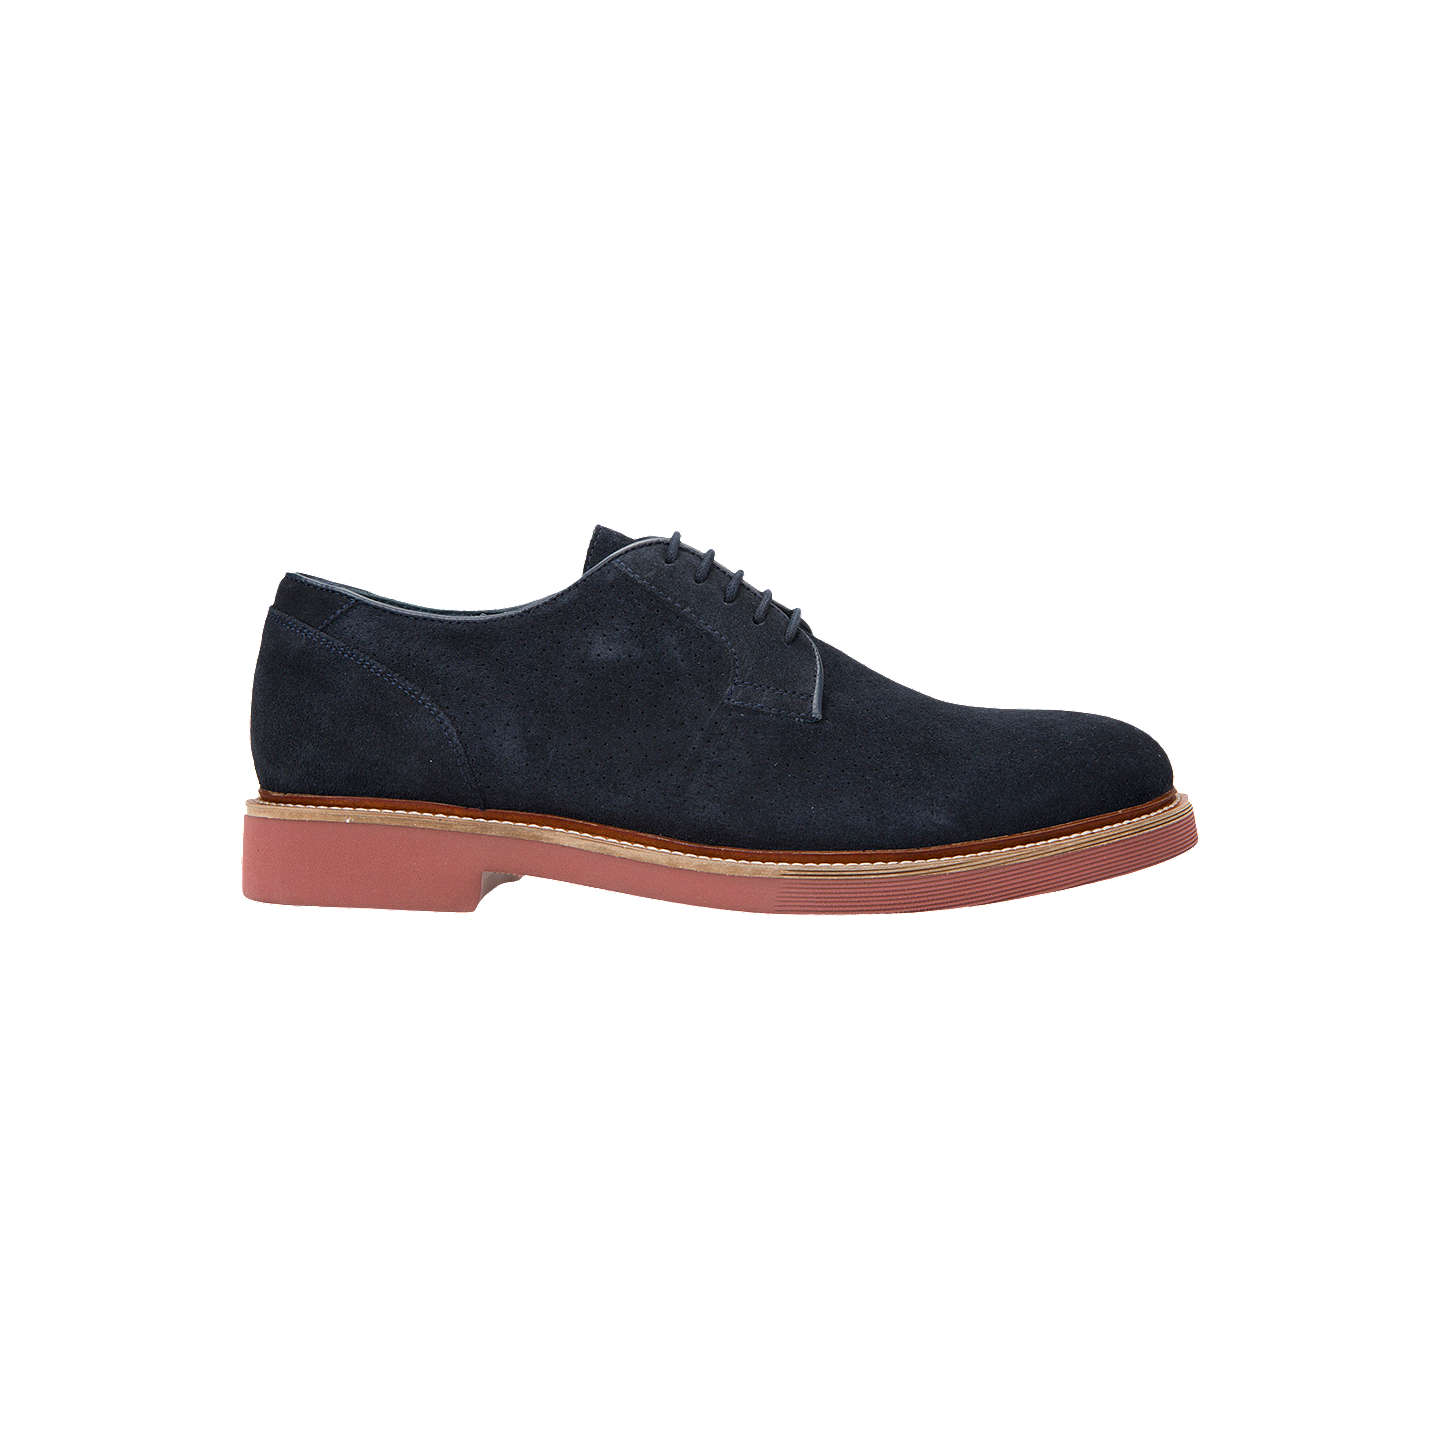 BuyGeox Damocle Suede Derby Shoes, Blue, 7 Online at johnlewis.com ...